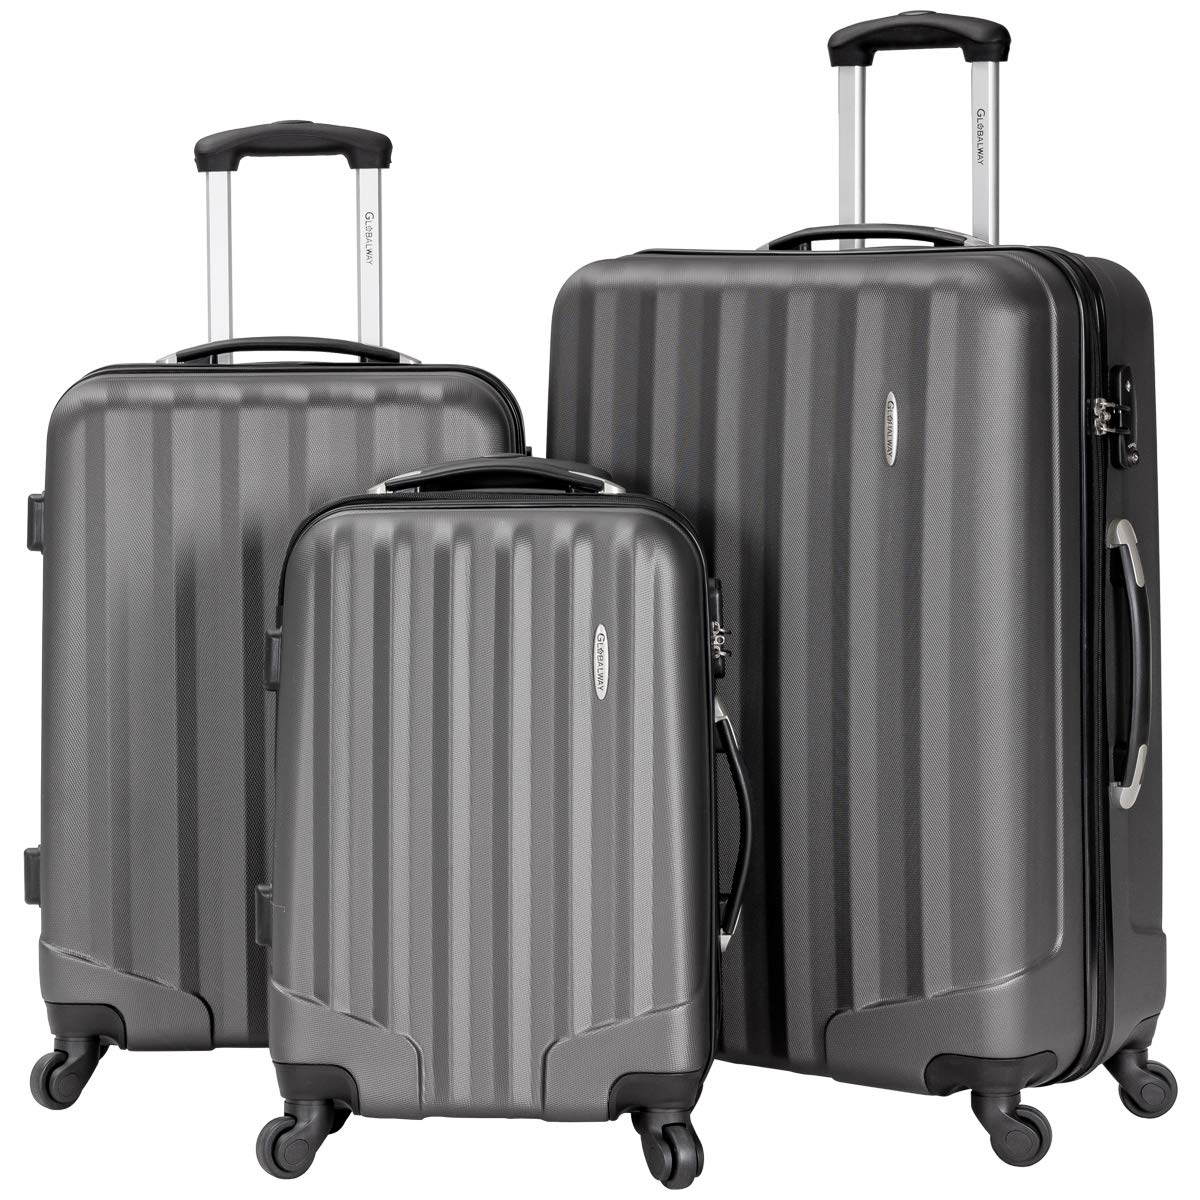 ce0a277964a1 Lightweight 3 Piece Luggage Sets,Durable Hardshell Spinner Suitcase with  TSA Approved Locks